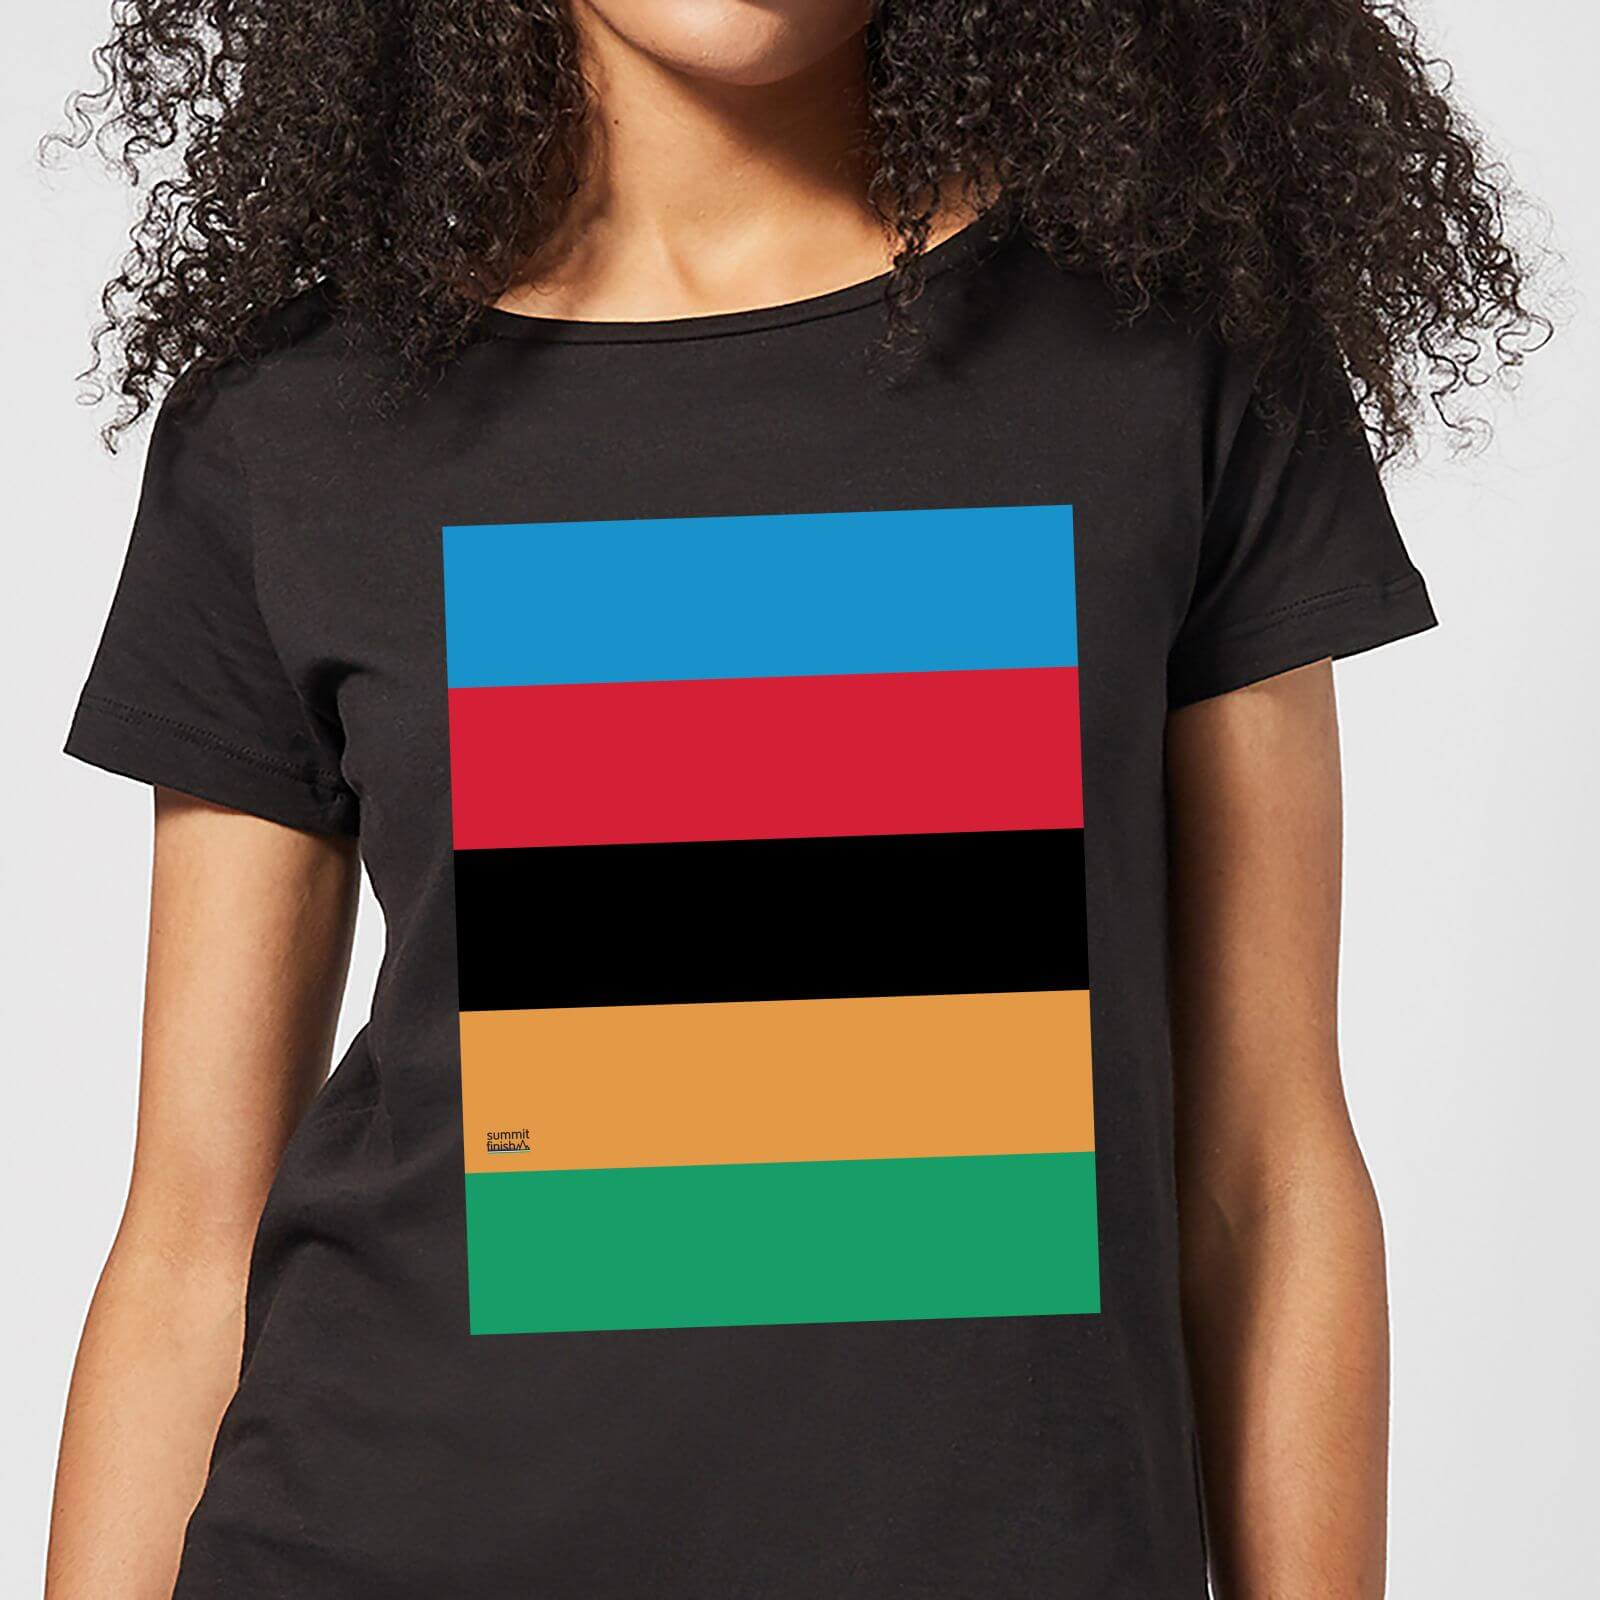 443939bde Summit Finish World Champion Stripes Women's T-Shirt - Black. Description